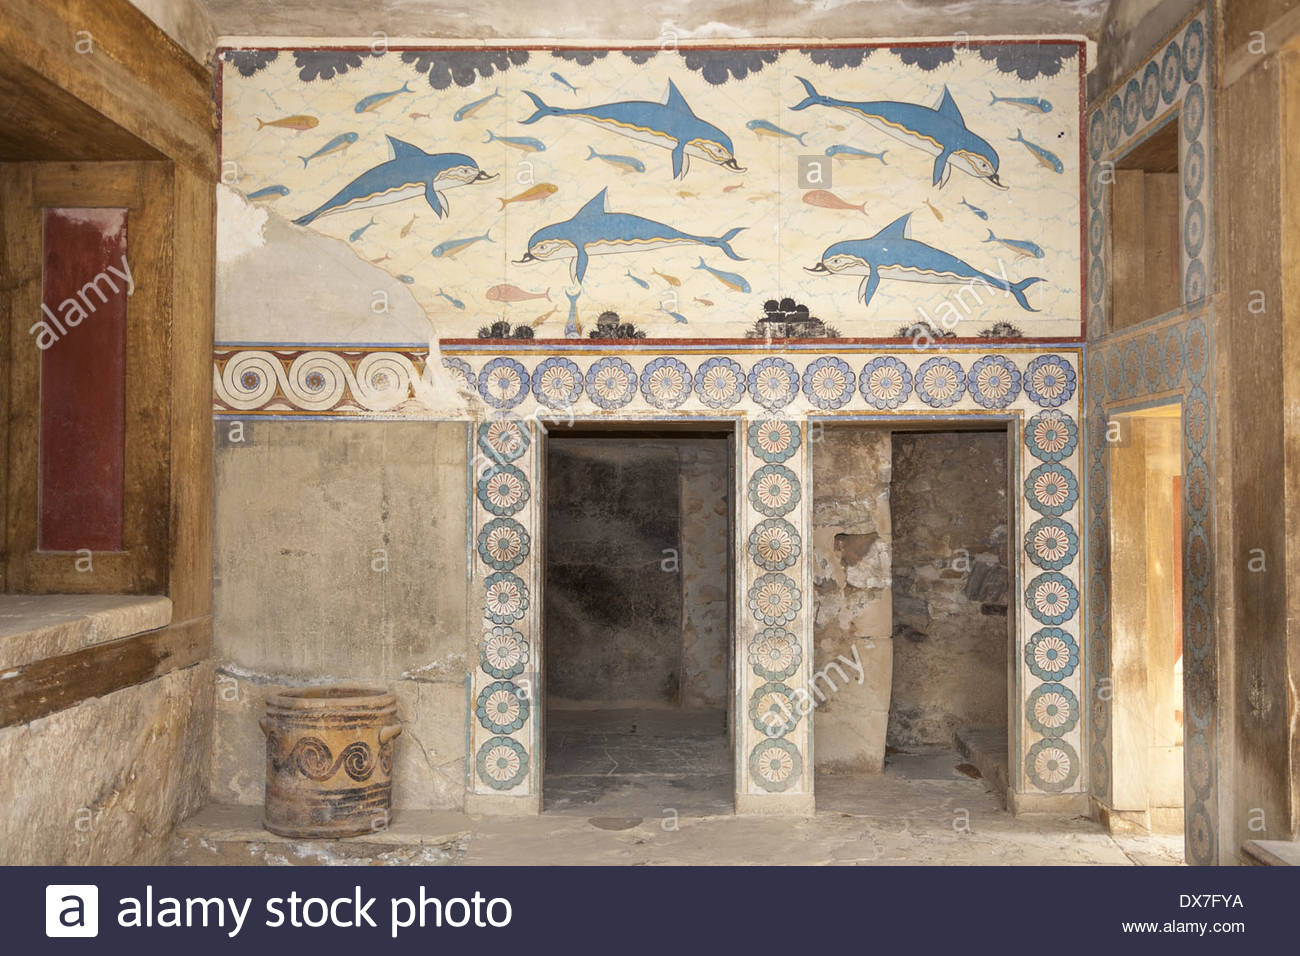 Queen's Megaron Knossos, Dolphin fresco in the Queen's Megaron, Knossos Palace, Knossos ...